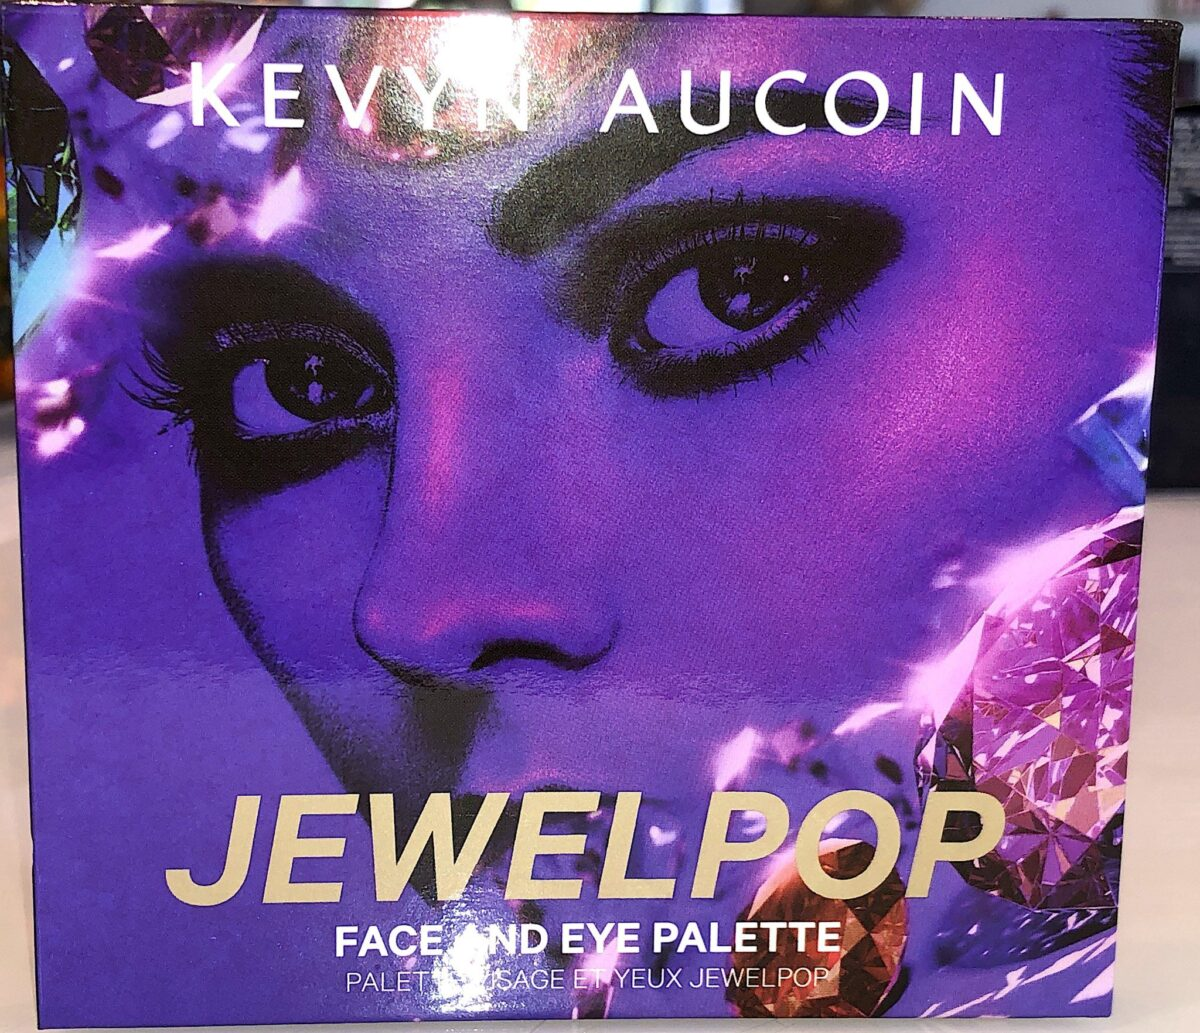 THE COMPACT/CASE FOR THE KEVYN AUCOIN JEWEL POP PALETTE